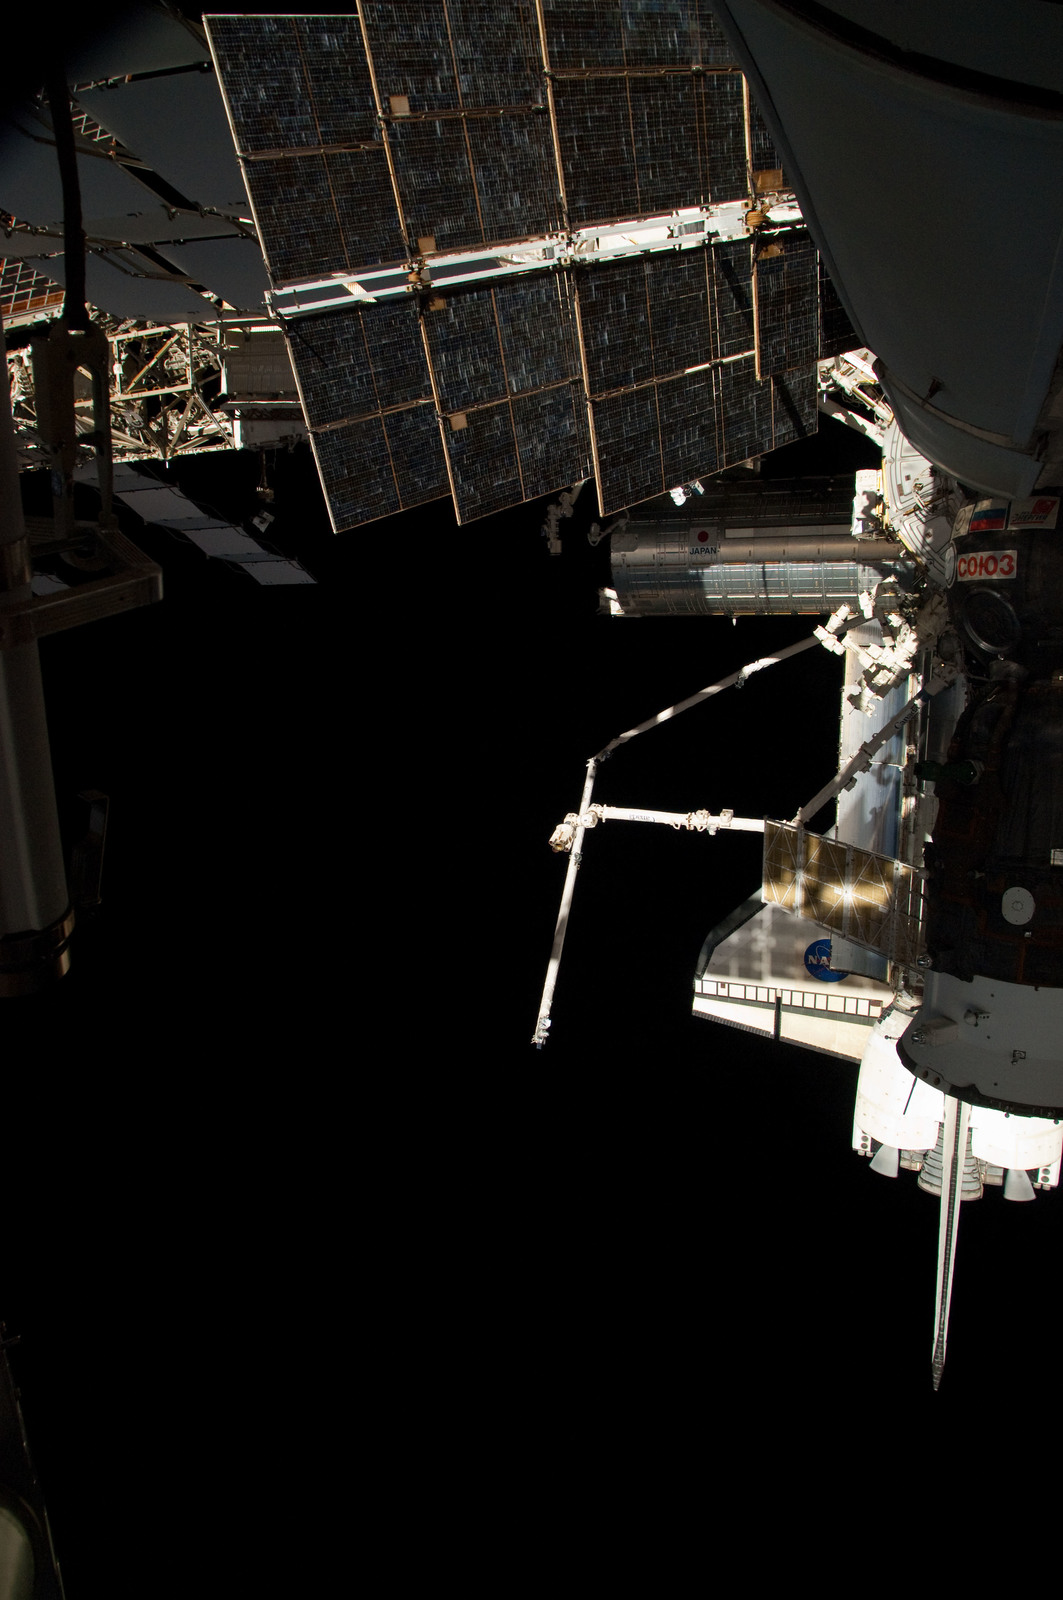 S126E025042 - STS-126 - View of ISS, Docked Soyuz and Endeavour